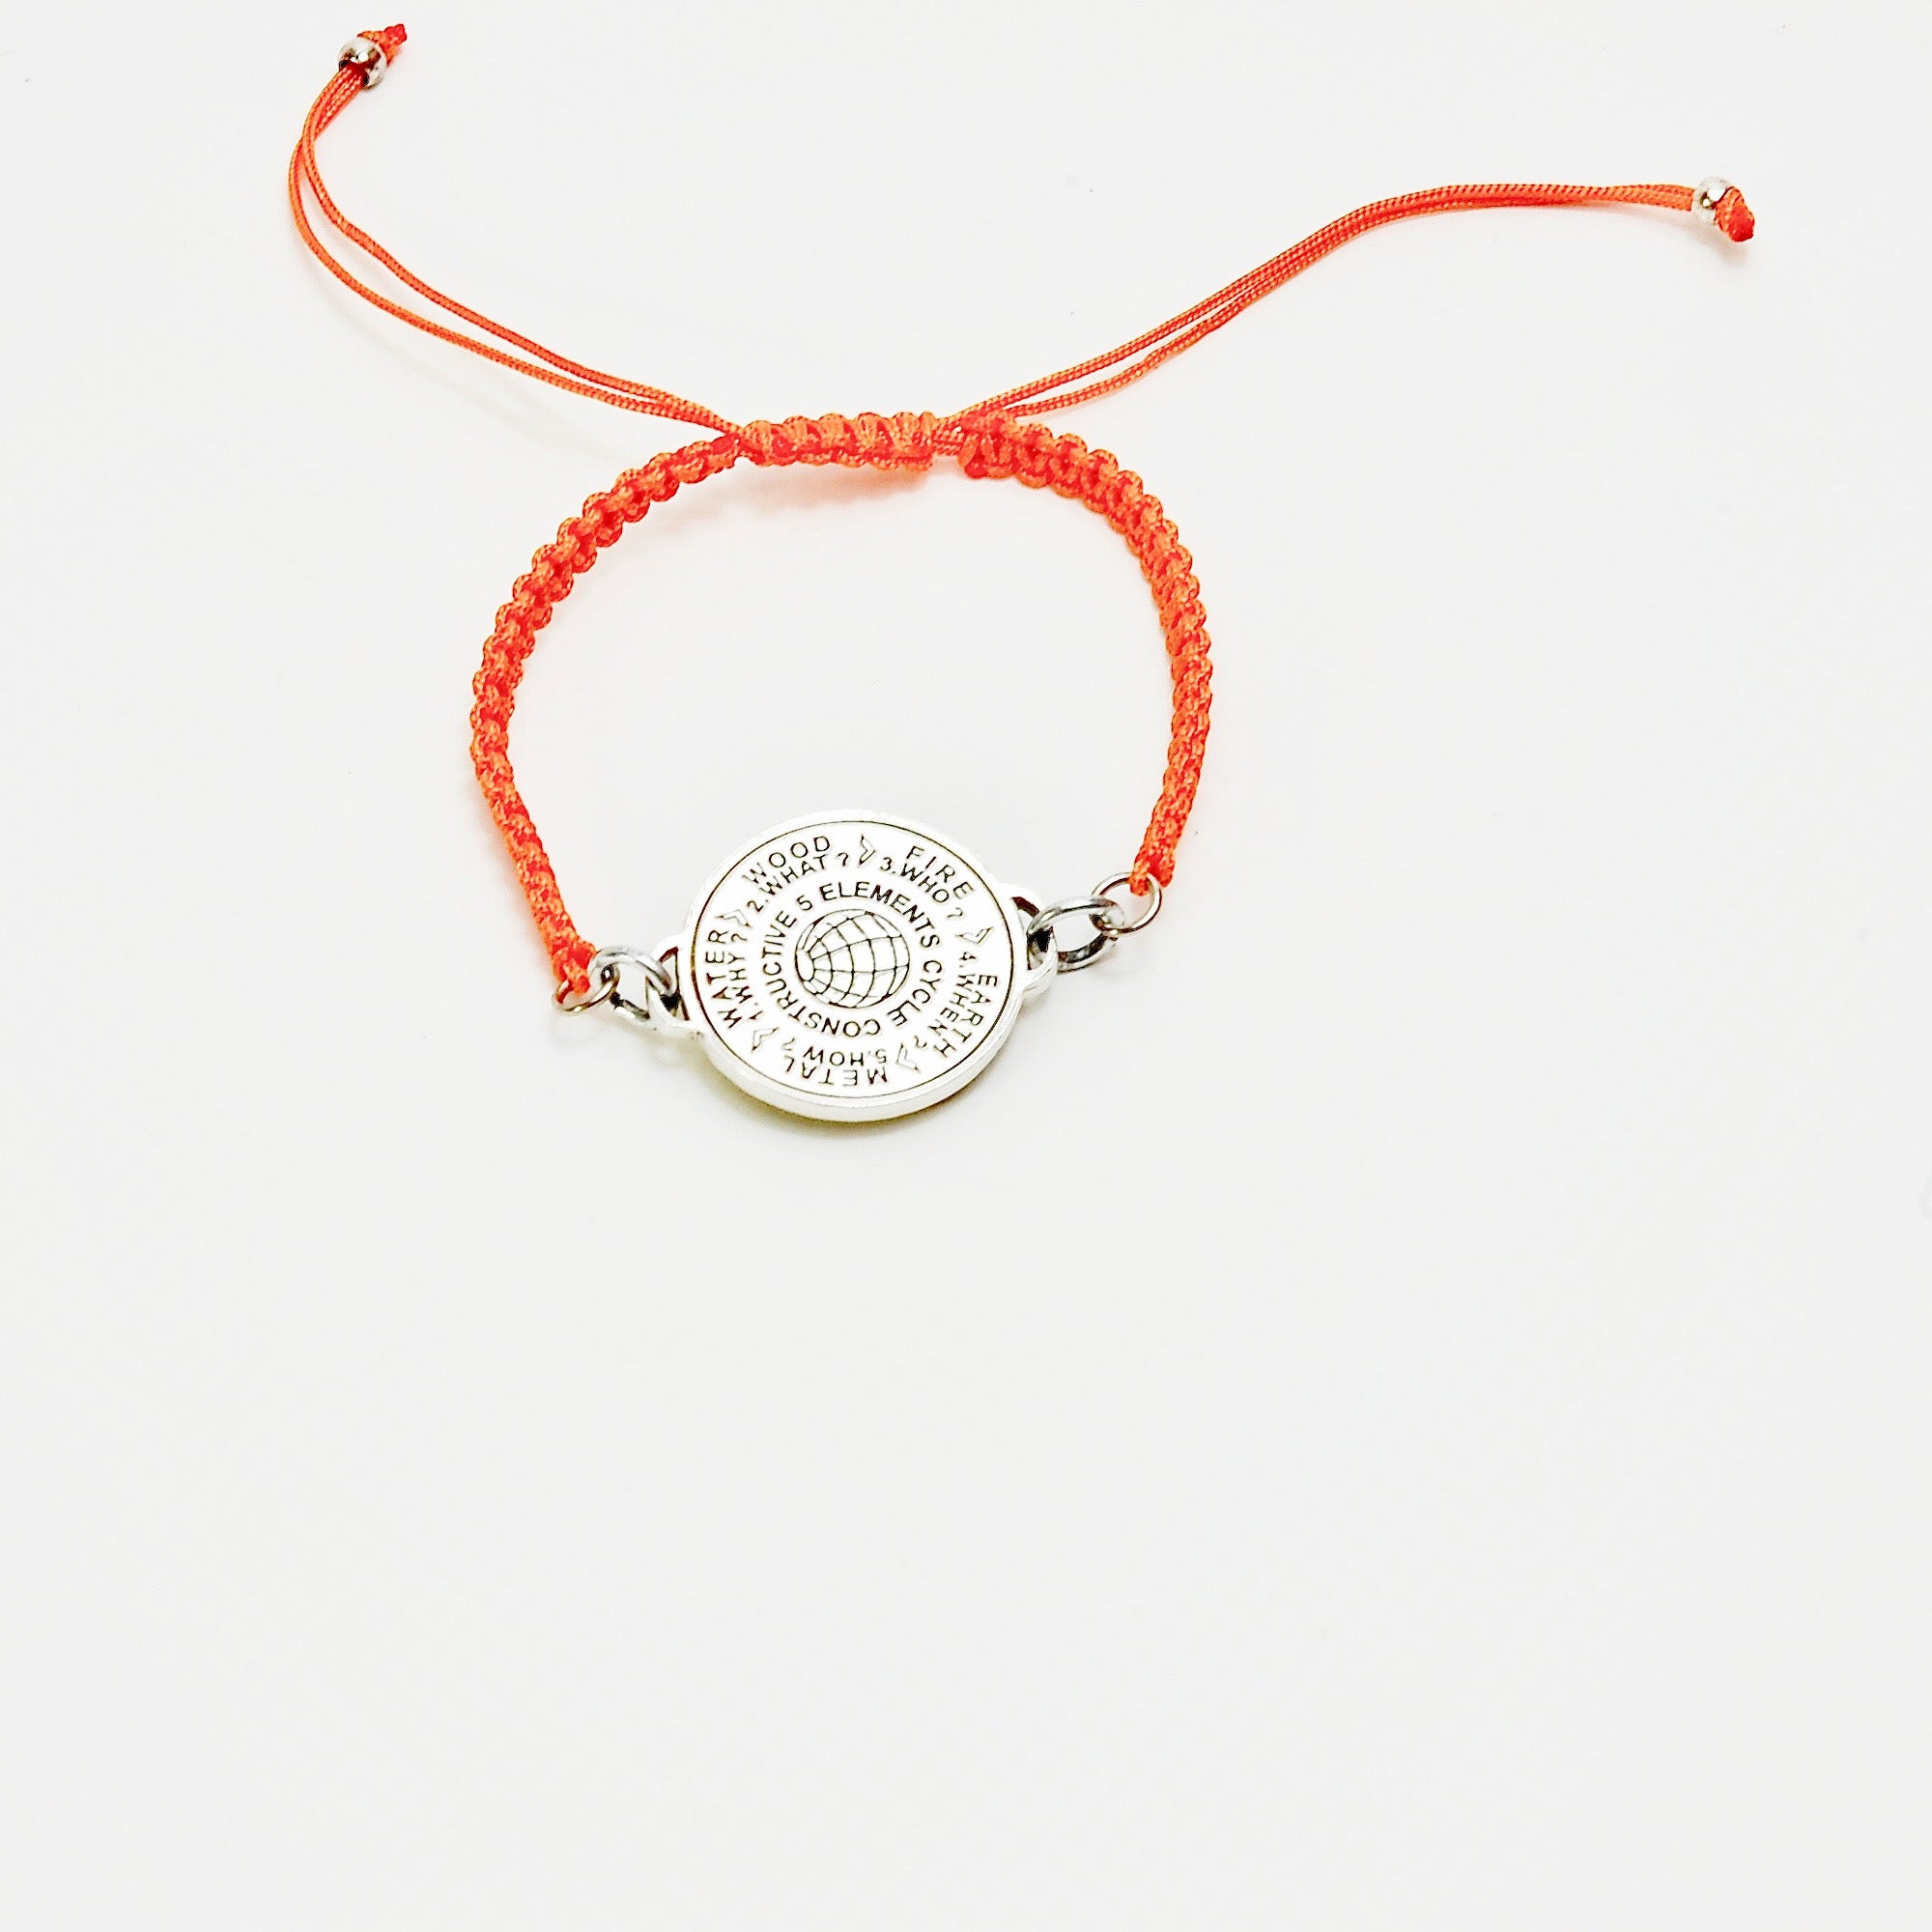 5 Elements Jewelry Bracelet Macrame orange color cordon